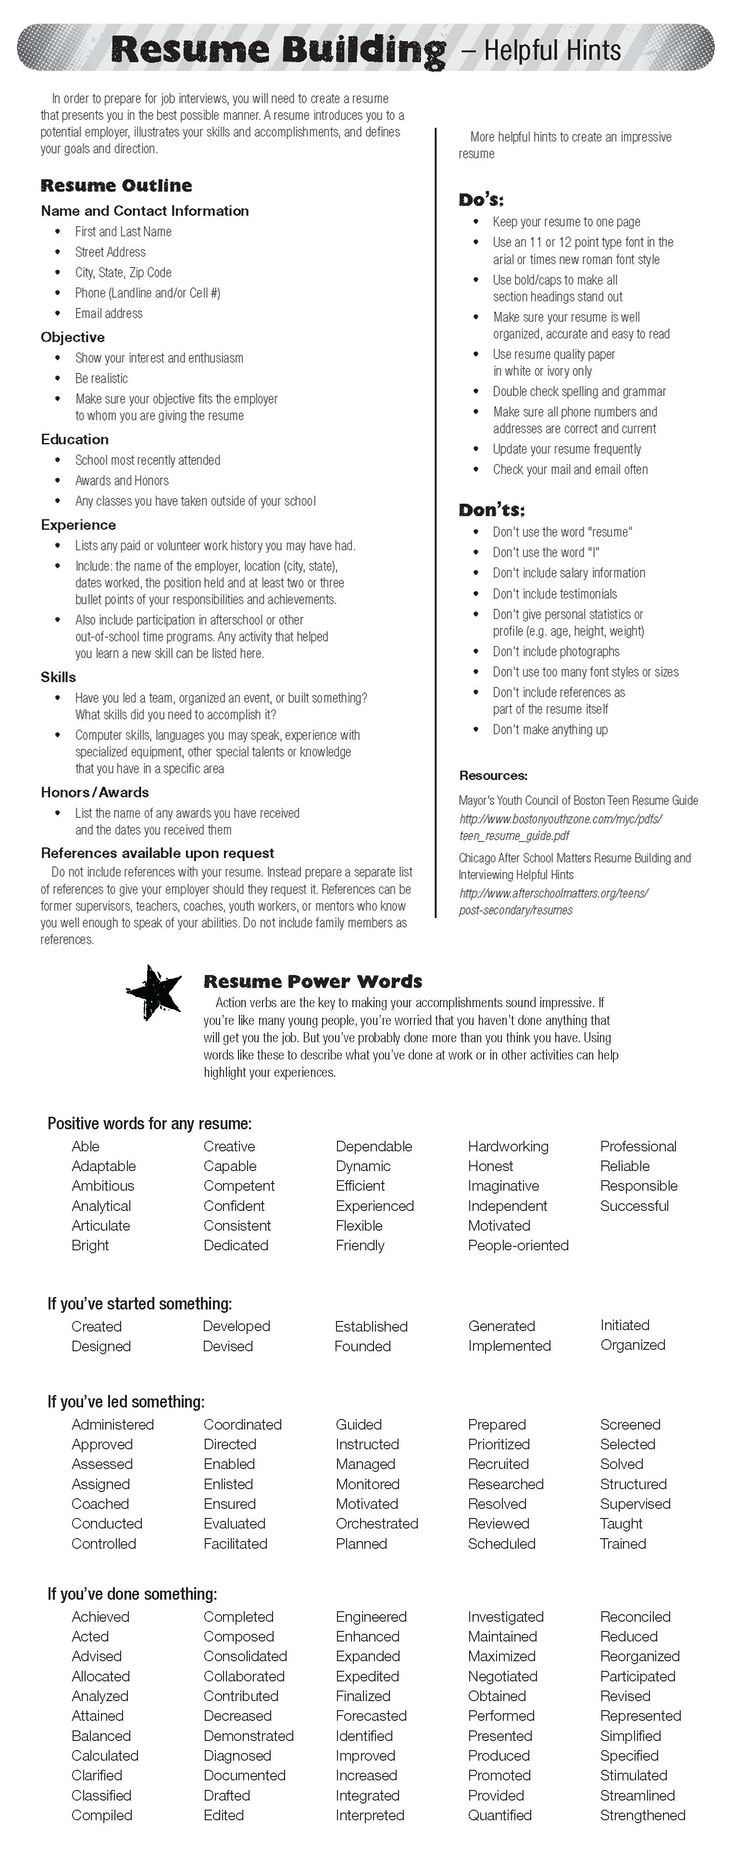 Opposenewapstandardsus  Stunning  Ideas About Resume On Pinterest  Cv Format Resume Cv And  With Fascinating  Ideas About Resume On Pinterest  Cv Format Resume Cv And Resume Templates With Astounding Combination Resume Samples Also Update Your Resume In Addition Profile For A Resume And Objective Samples For Resumes As Well As Program Manager Resume Examples Additionally Examples Of An Objective On A Resume From Pinterestcom With Opposenewapstandardsus  Fascinating  Ideas About Resume On Pinterest  Cv Format Resume Cv And  With Astounding  Ideas About Resume On Pinterest  Cv Format Resume Cv And Resume Templates And Stunning Combination Resume Samples Also Update Your Resume In Addition Profile For A Resume From Pinterestcom